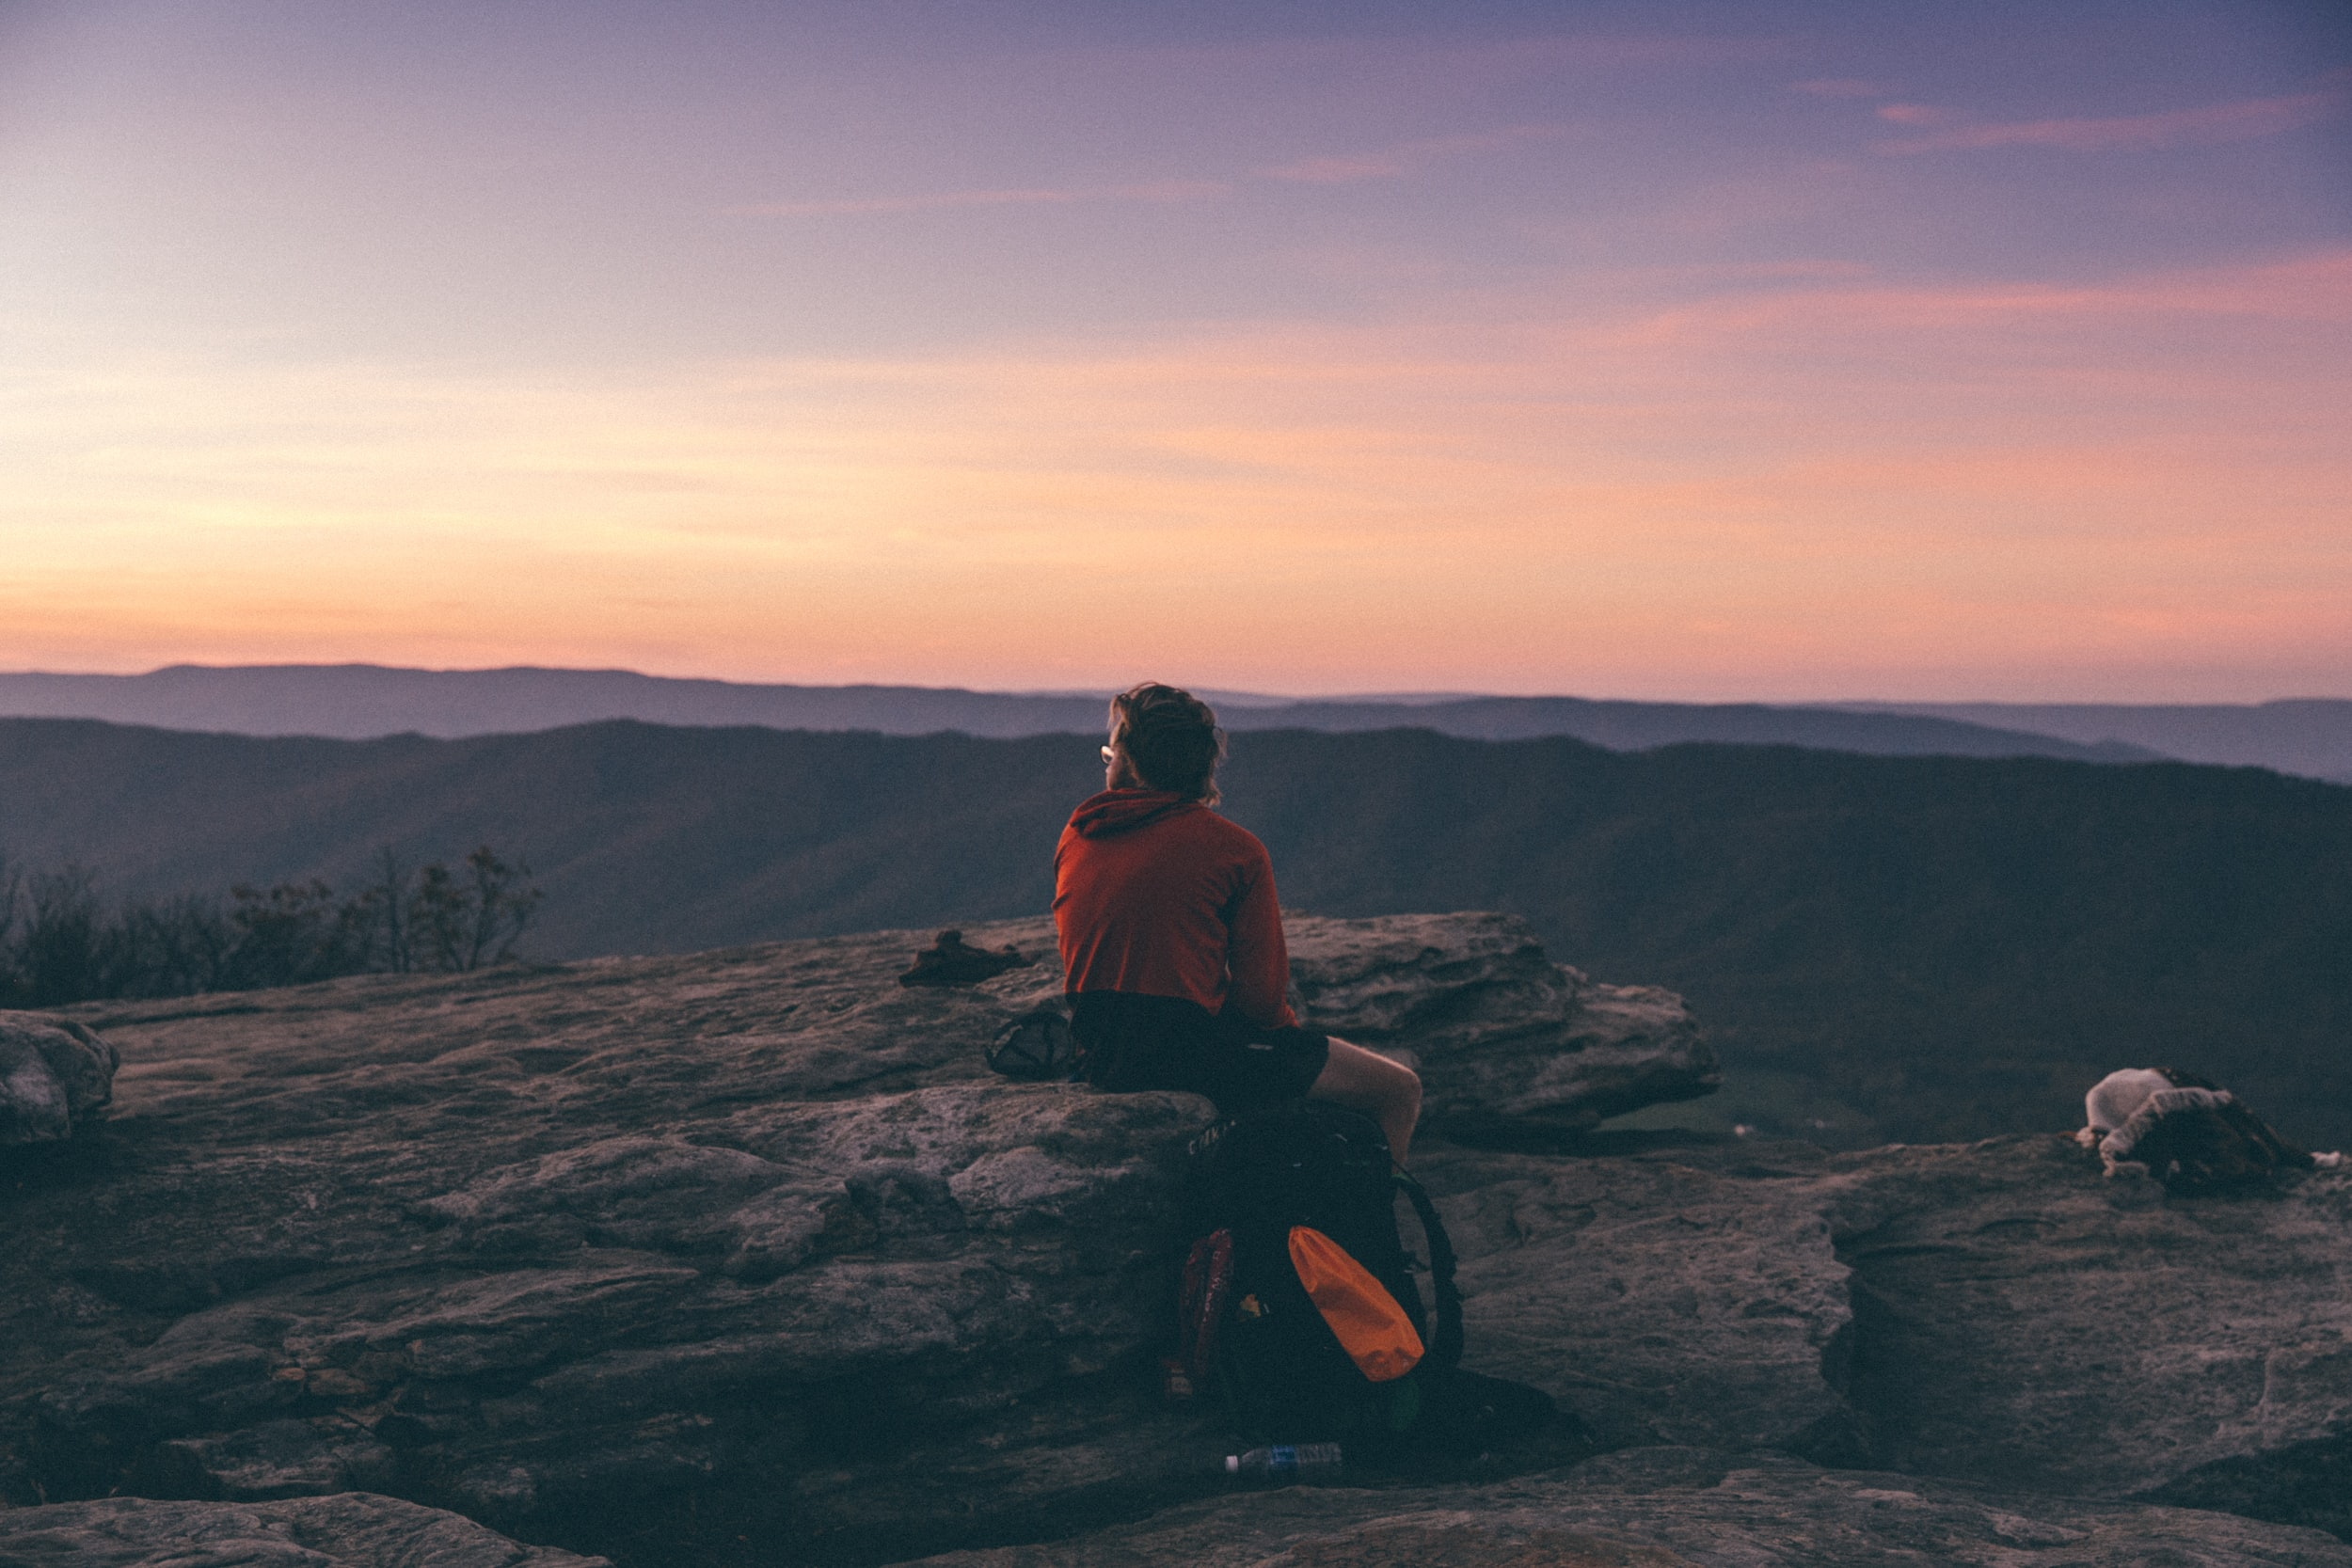 person sitting on boulder overlooking mountain during golden hour